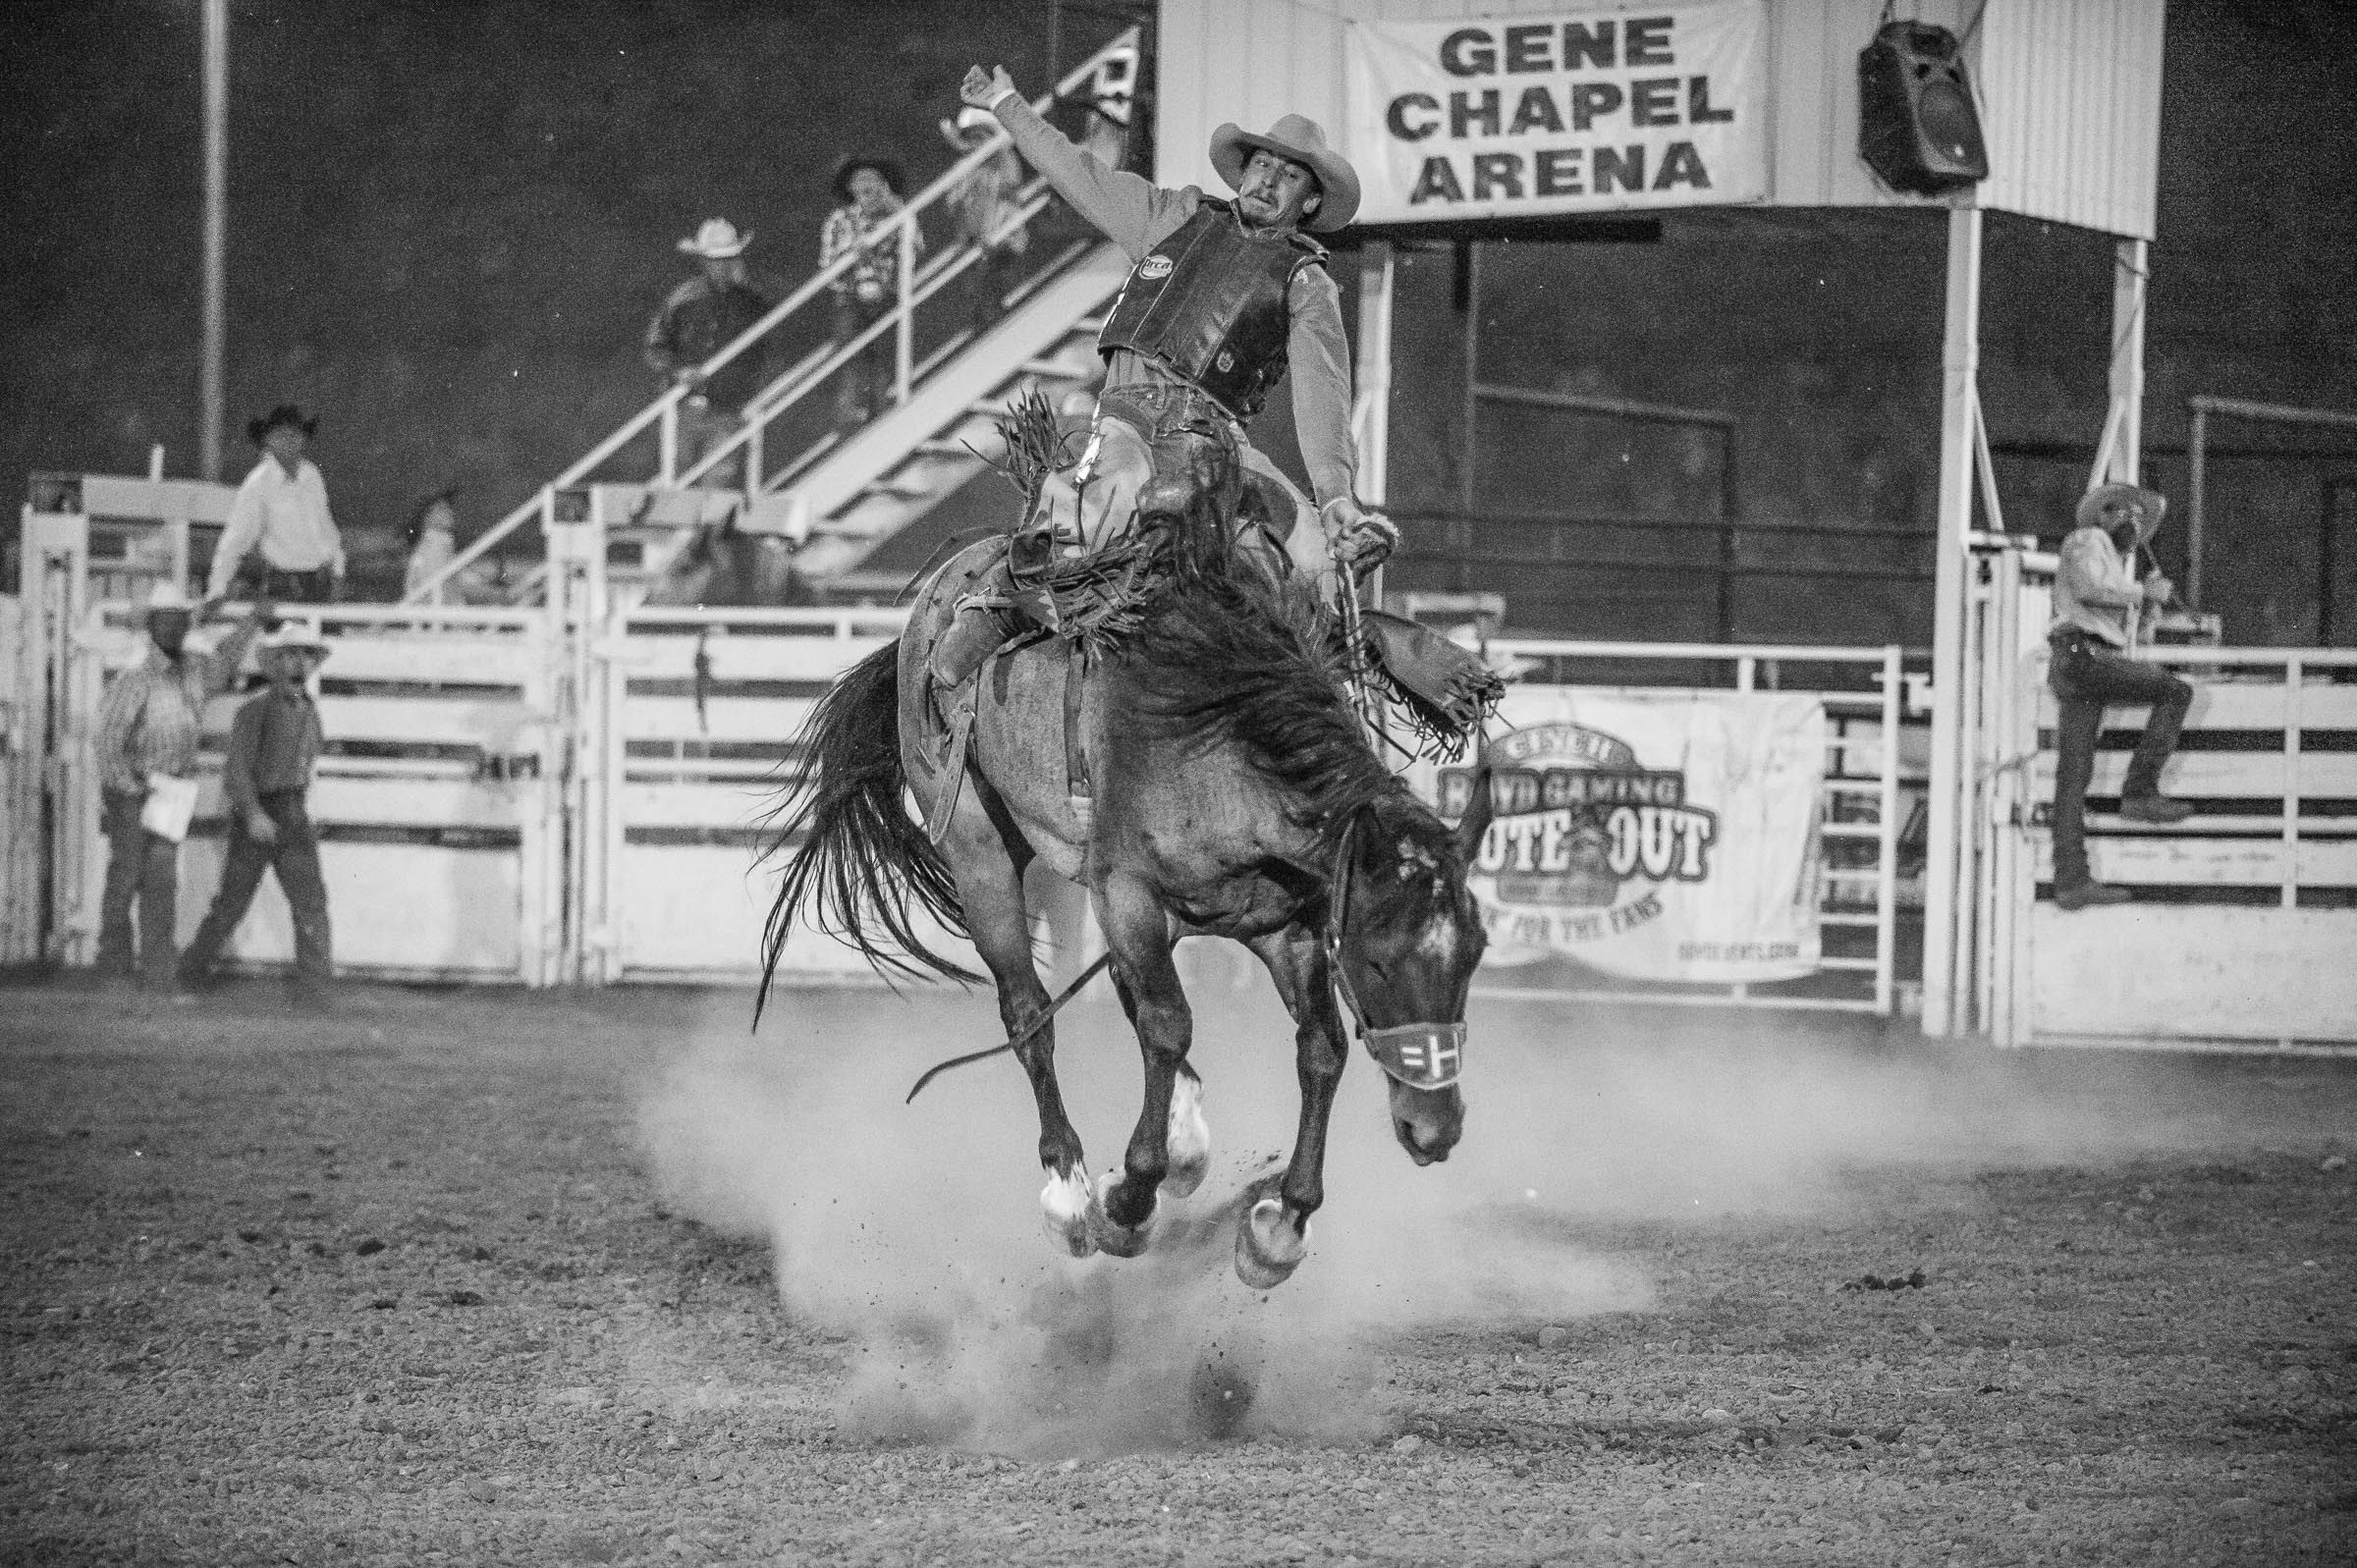 Saddle Bronc rider © Tony Bynum